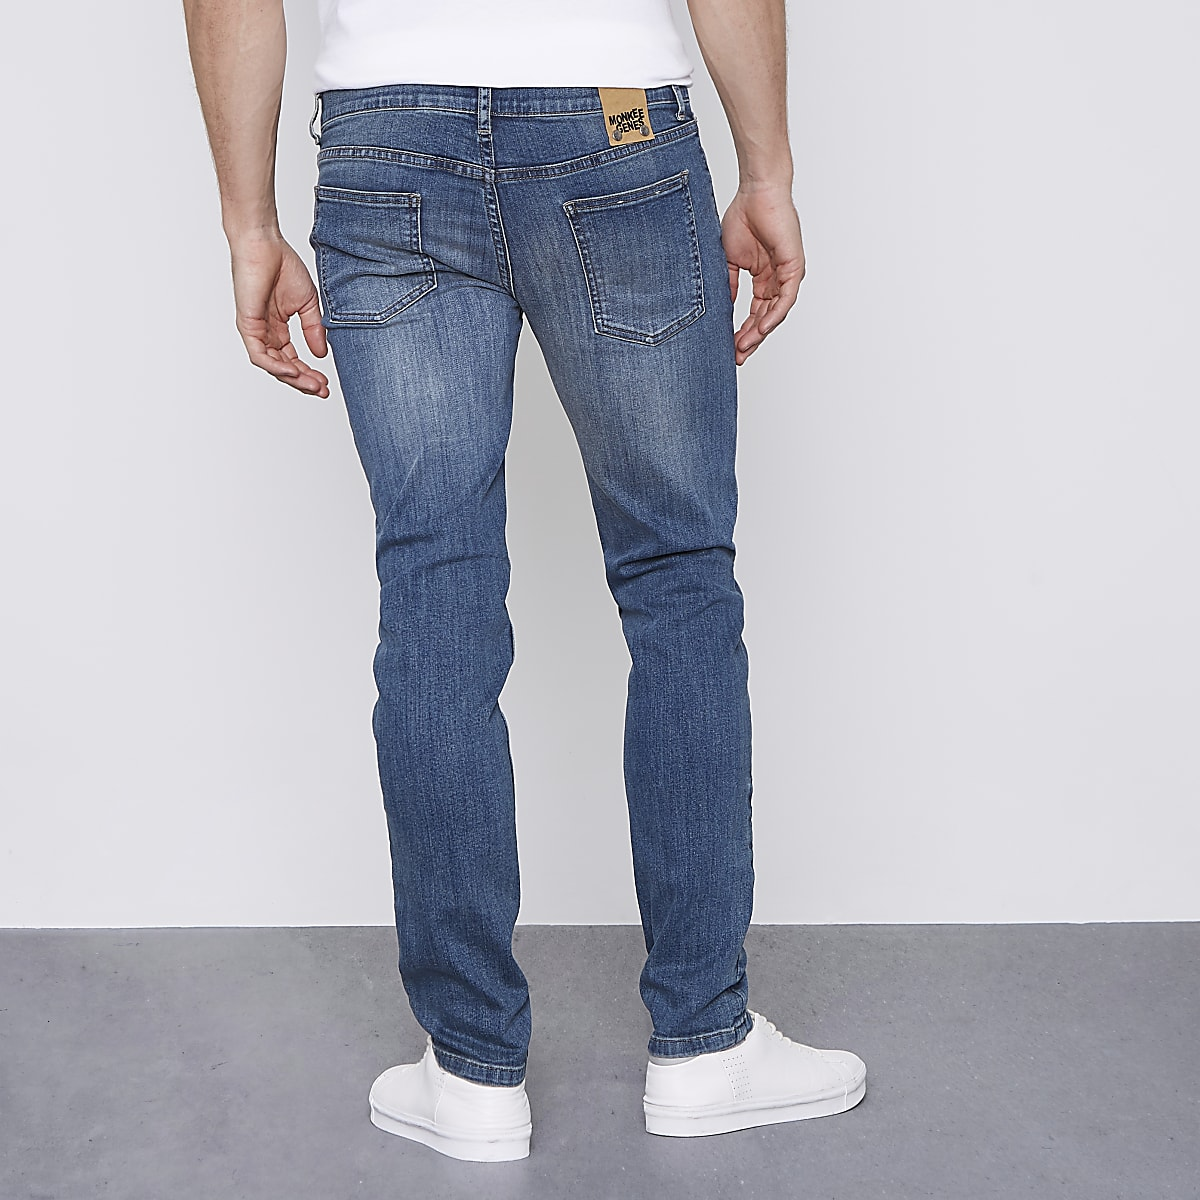 2a6bf3d2be92 Monkee Genes blue classic skinny jeans - Skinny Jeans - Jeans - men